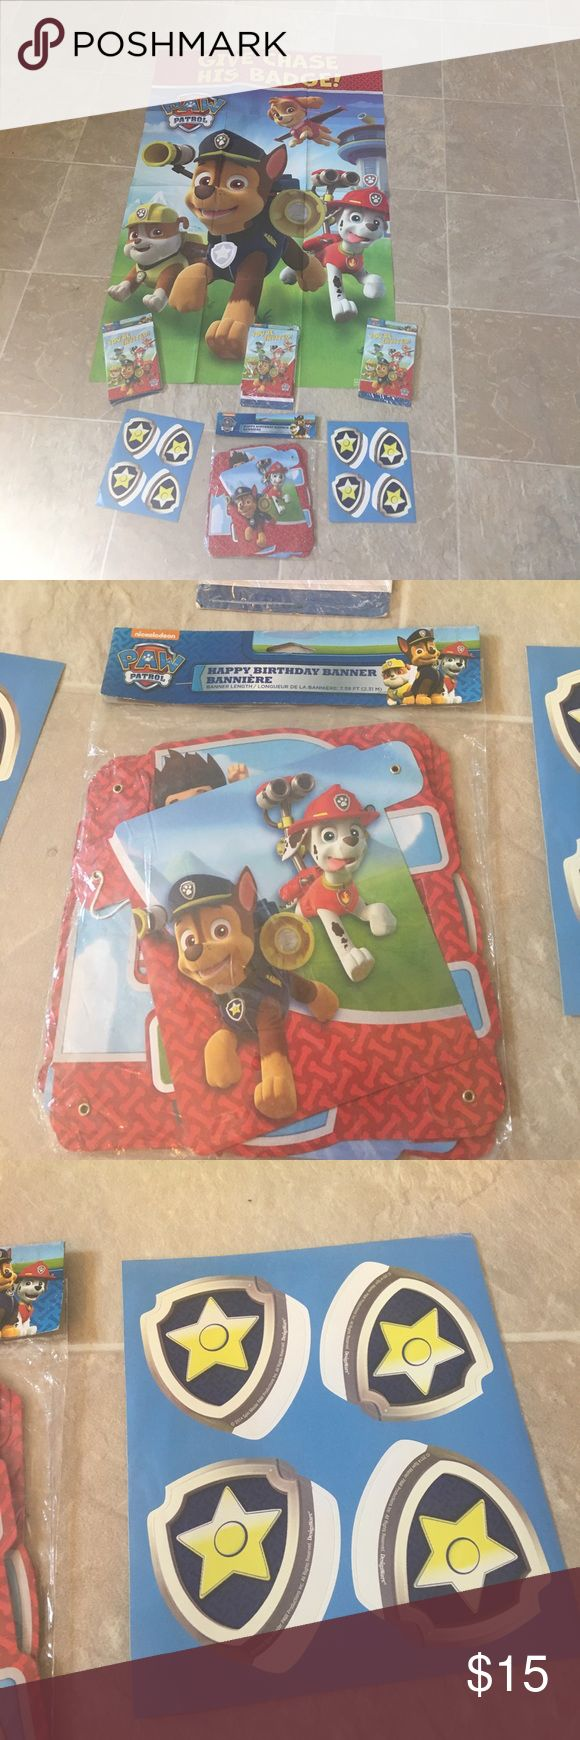 Paw patrol Birthday Bundle 🎉 New Condition- brand new  Size - one size game Color- red blue and yellow Style- paw patrol banner / game / invites & Thank you cards  Brand- nick Jr Smoke free pet free home!! Ships within 2 business days!  Bundle with 2 or more listings and save 25% through march.     All included - Paw patrol pin the badge on chase game with 8 stickers , 23 birthday invitations that come with thank you cards and envelopes, and happy birthday banner Nickelodeon Accessories